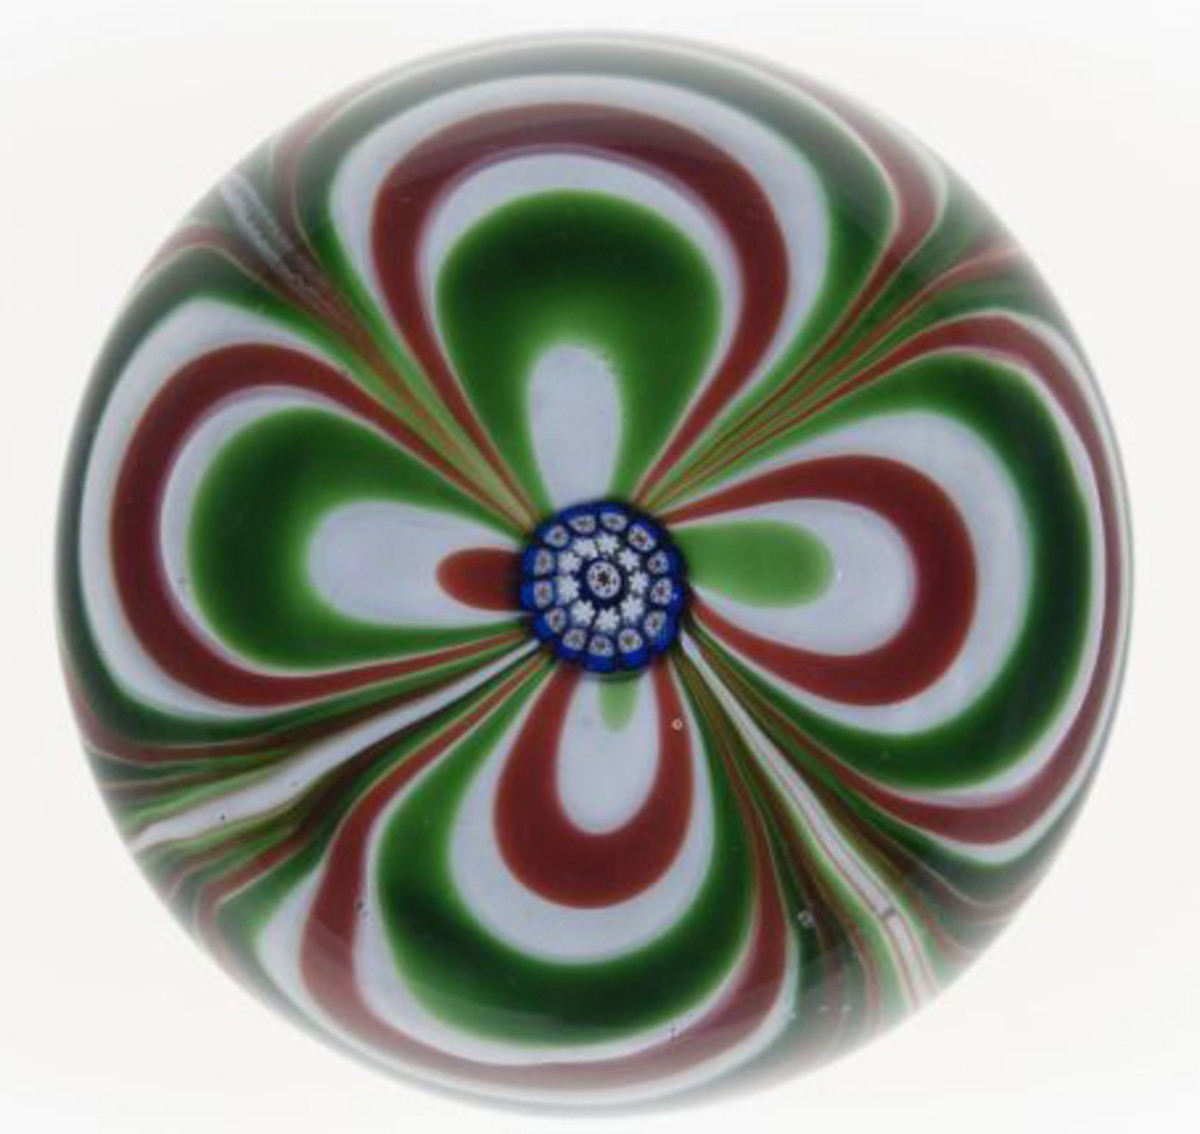 paperweights, c. 1846-55, from Saint-Louis, France,